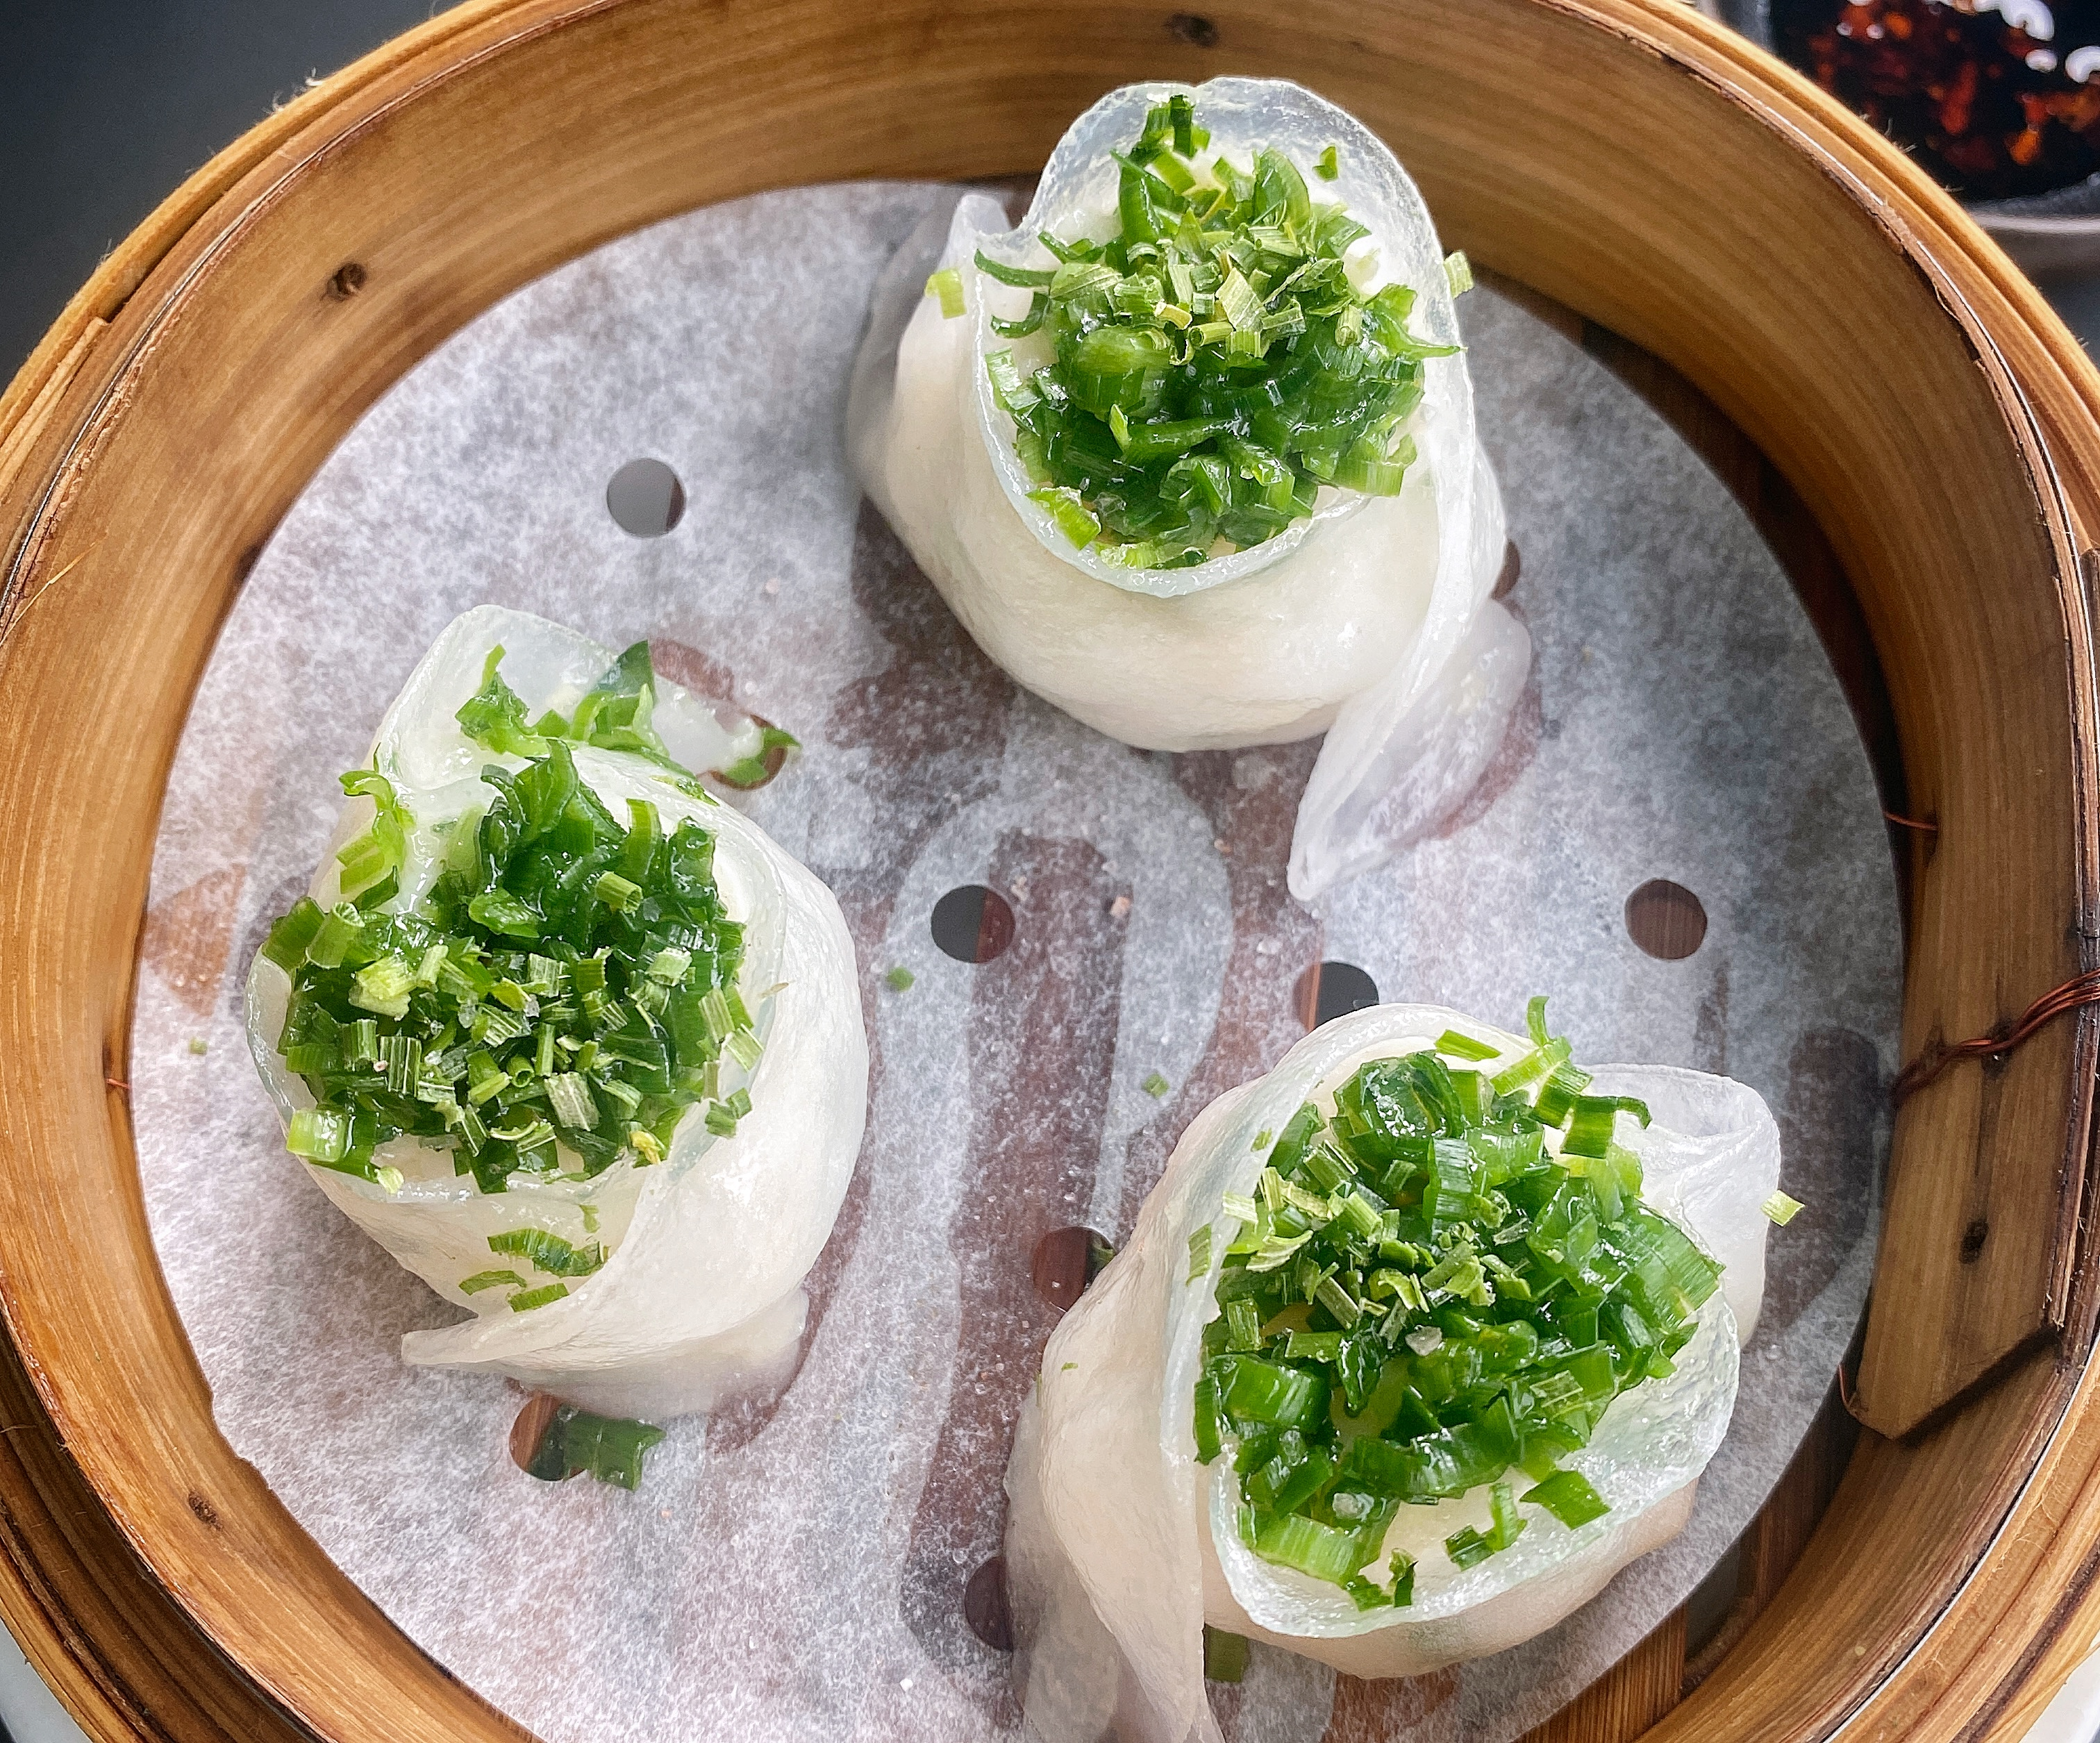 Three prawn and water chestnut dumplings topped with green ringlets of chive, in a bamboo steam basket, shot from above